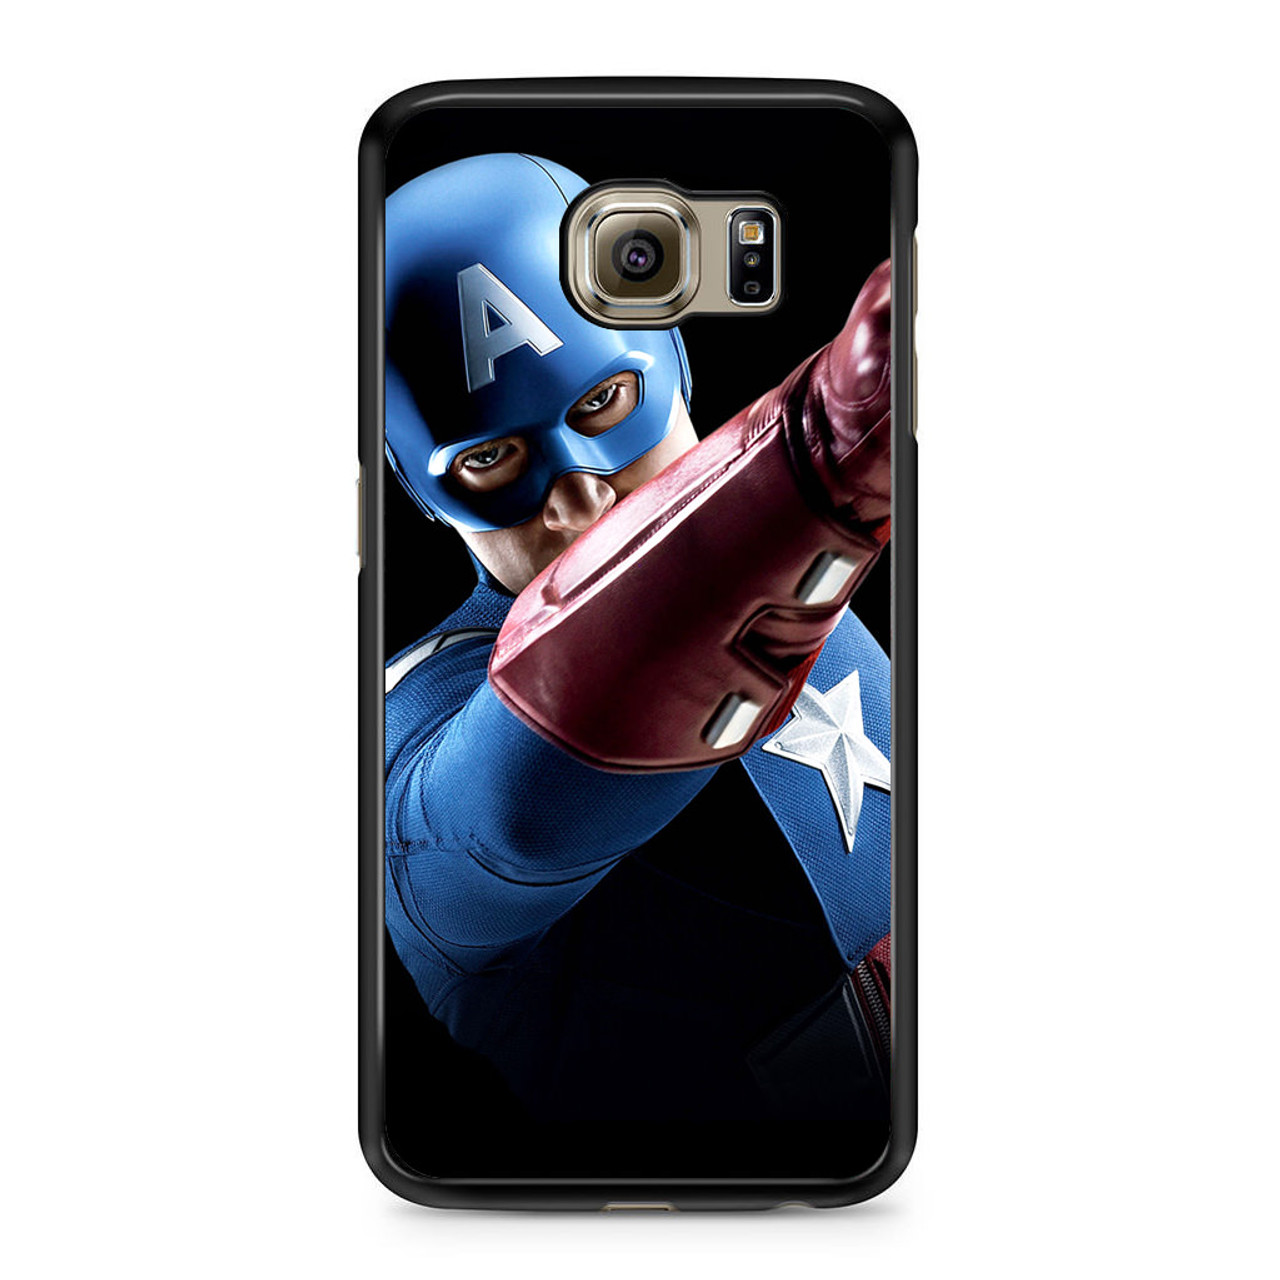 quality design 059ab 4ebf3 Avengers Captain America Art Samsung Galaxy S6 Case